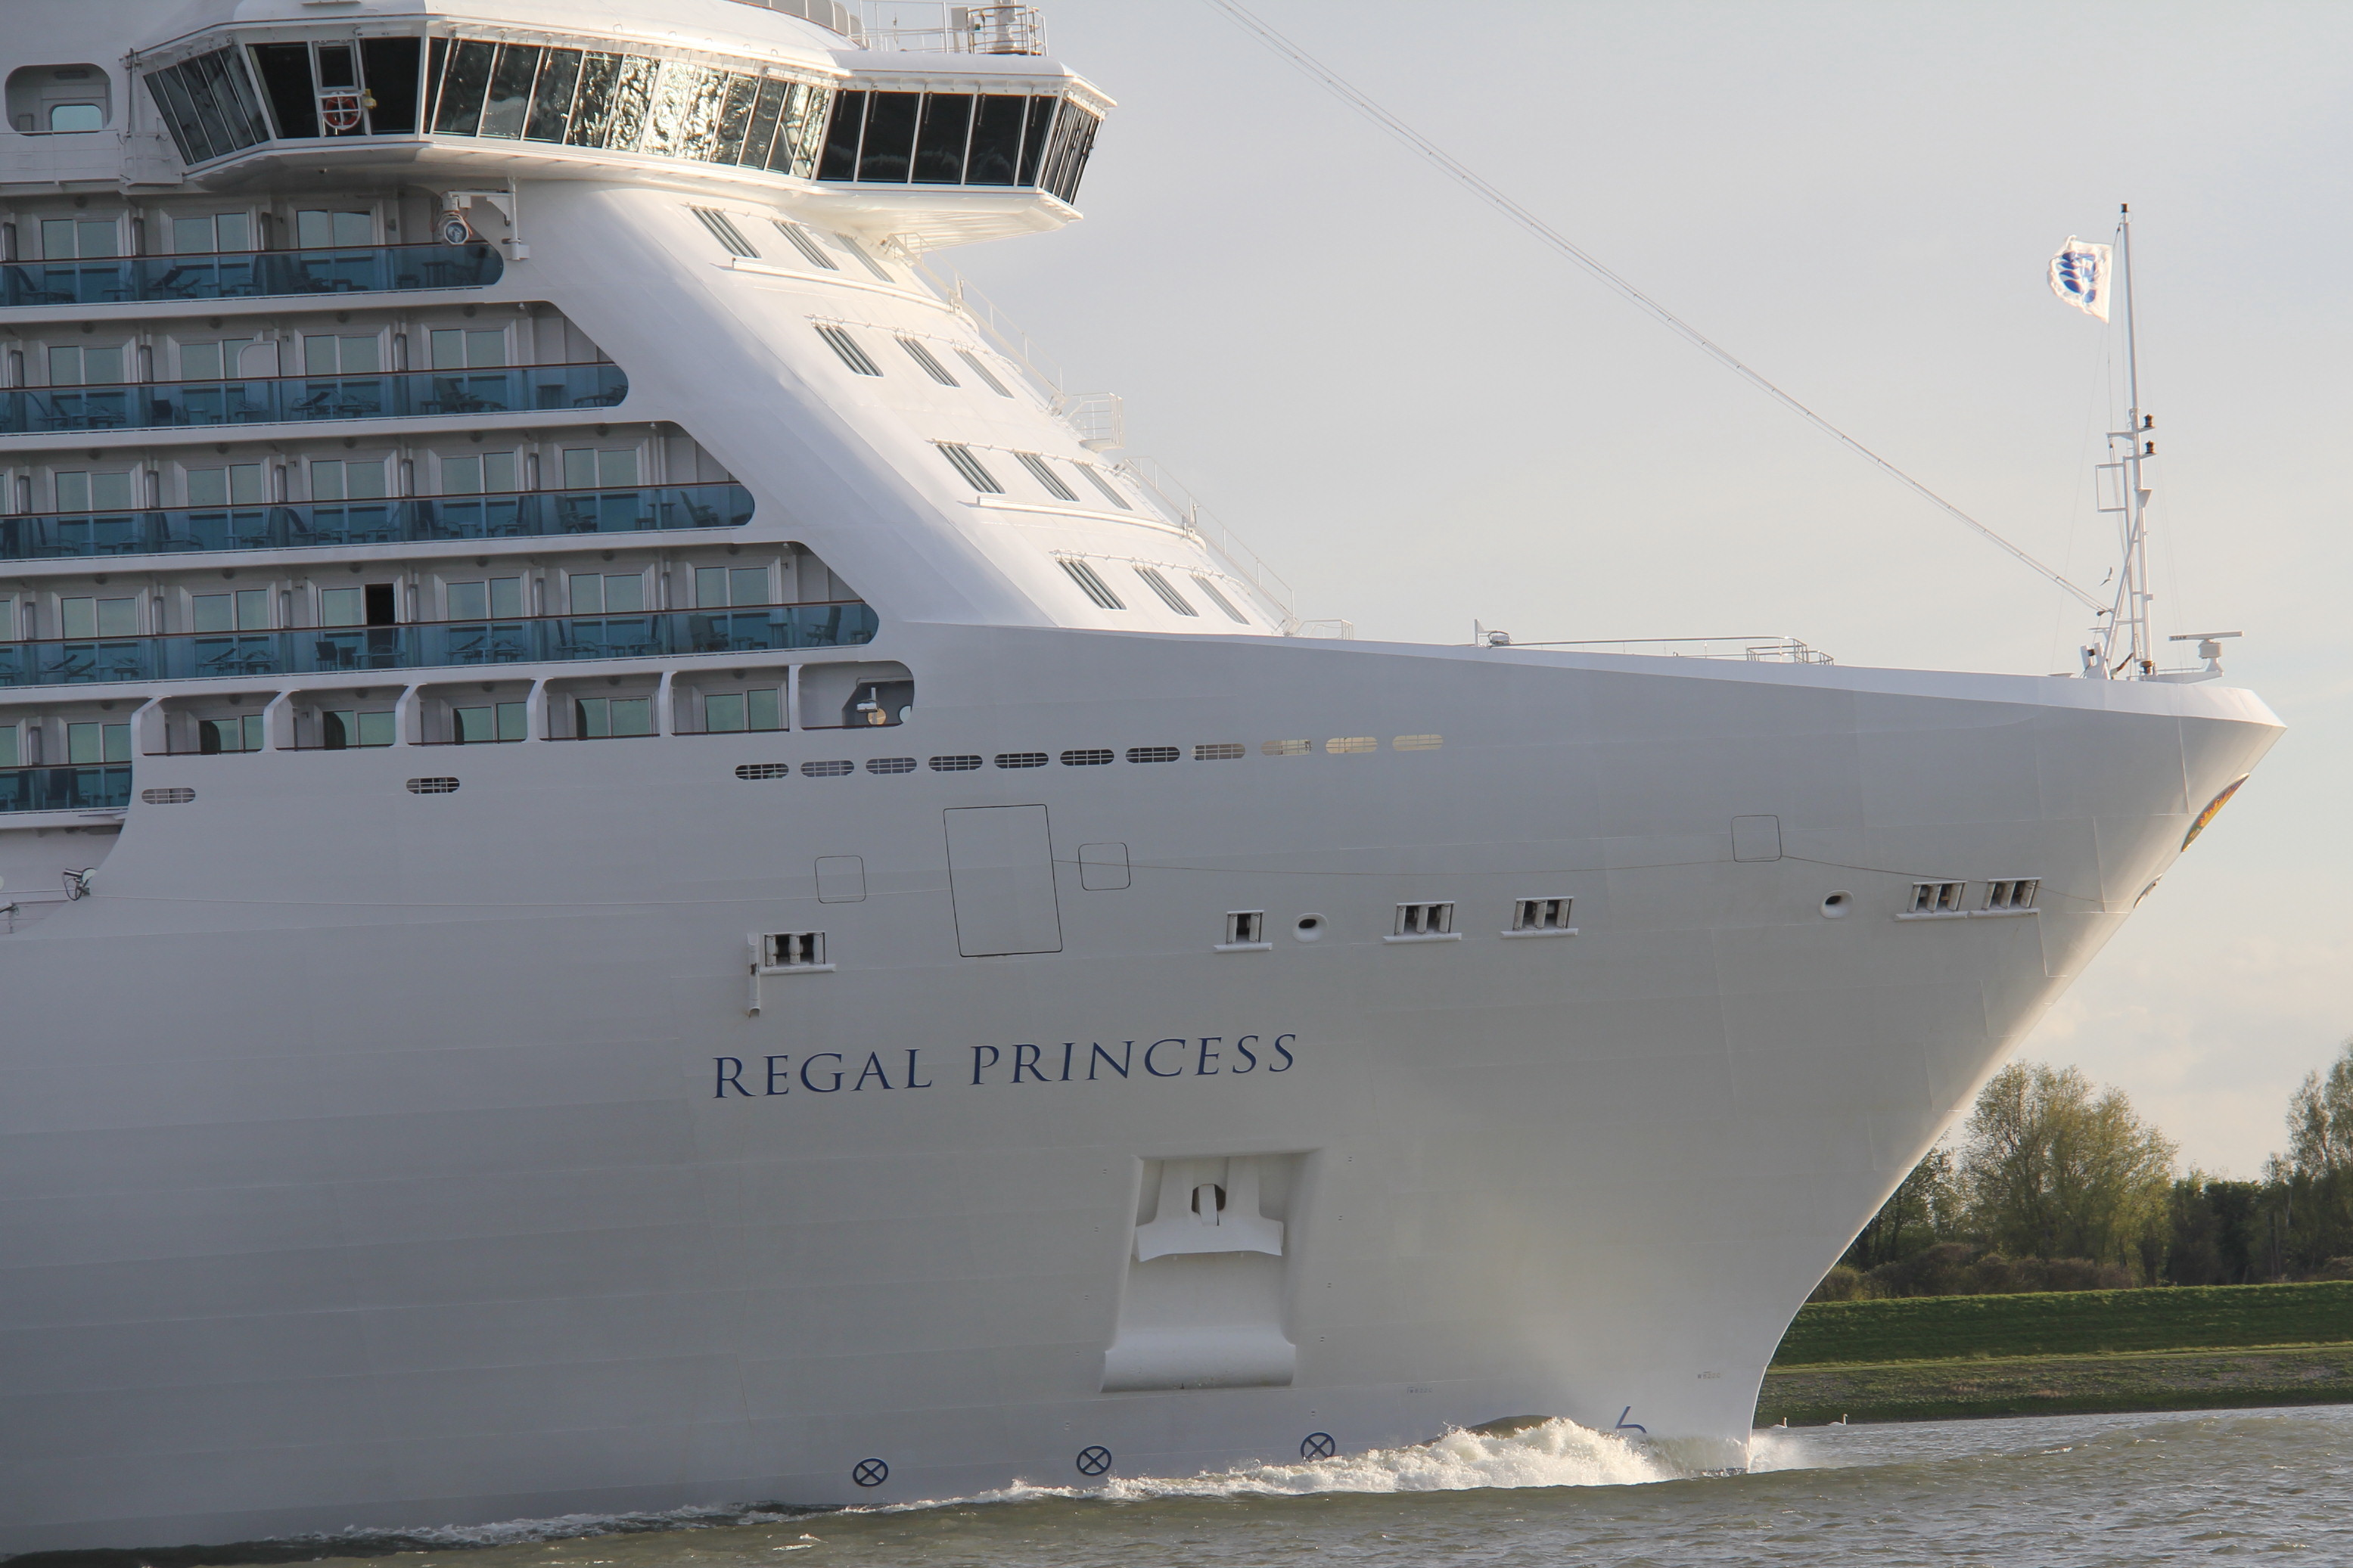 regalprincess03.jpg